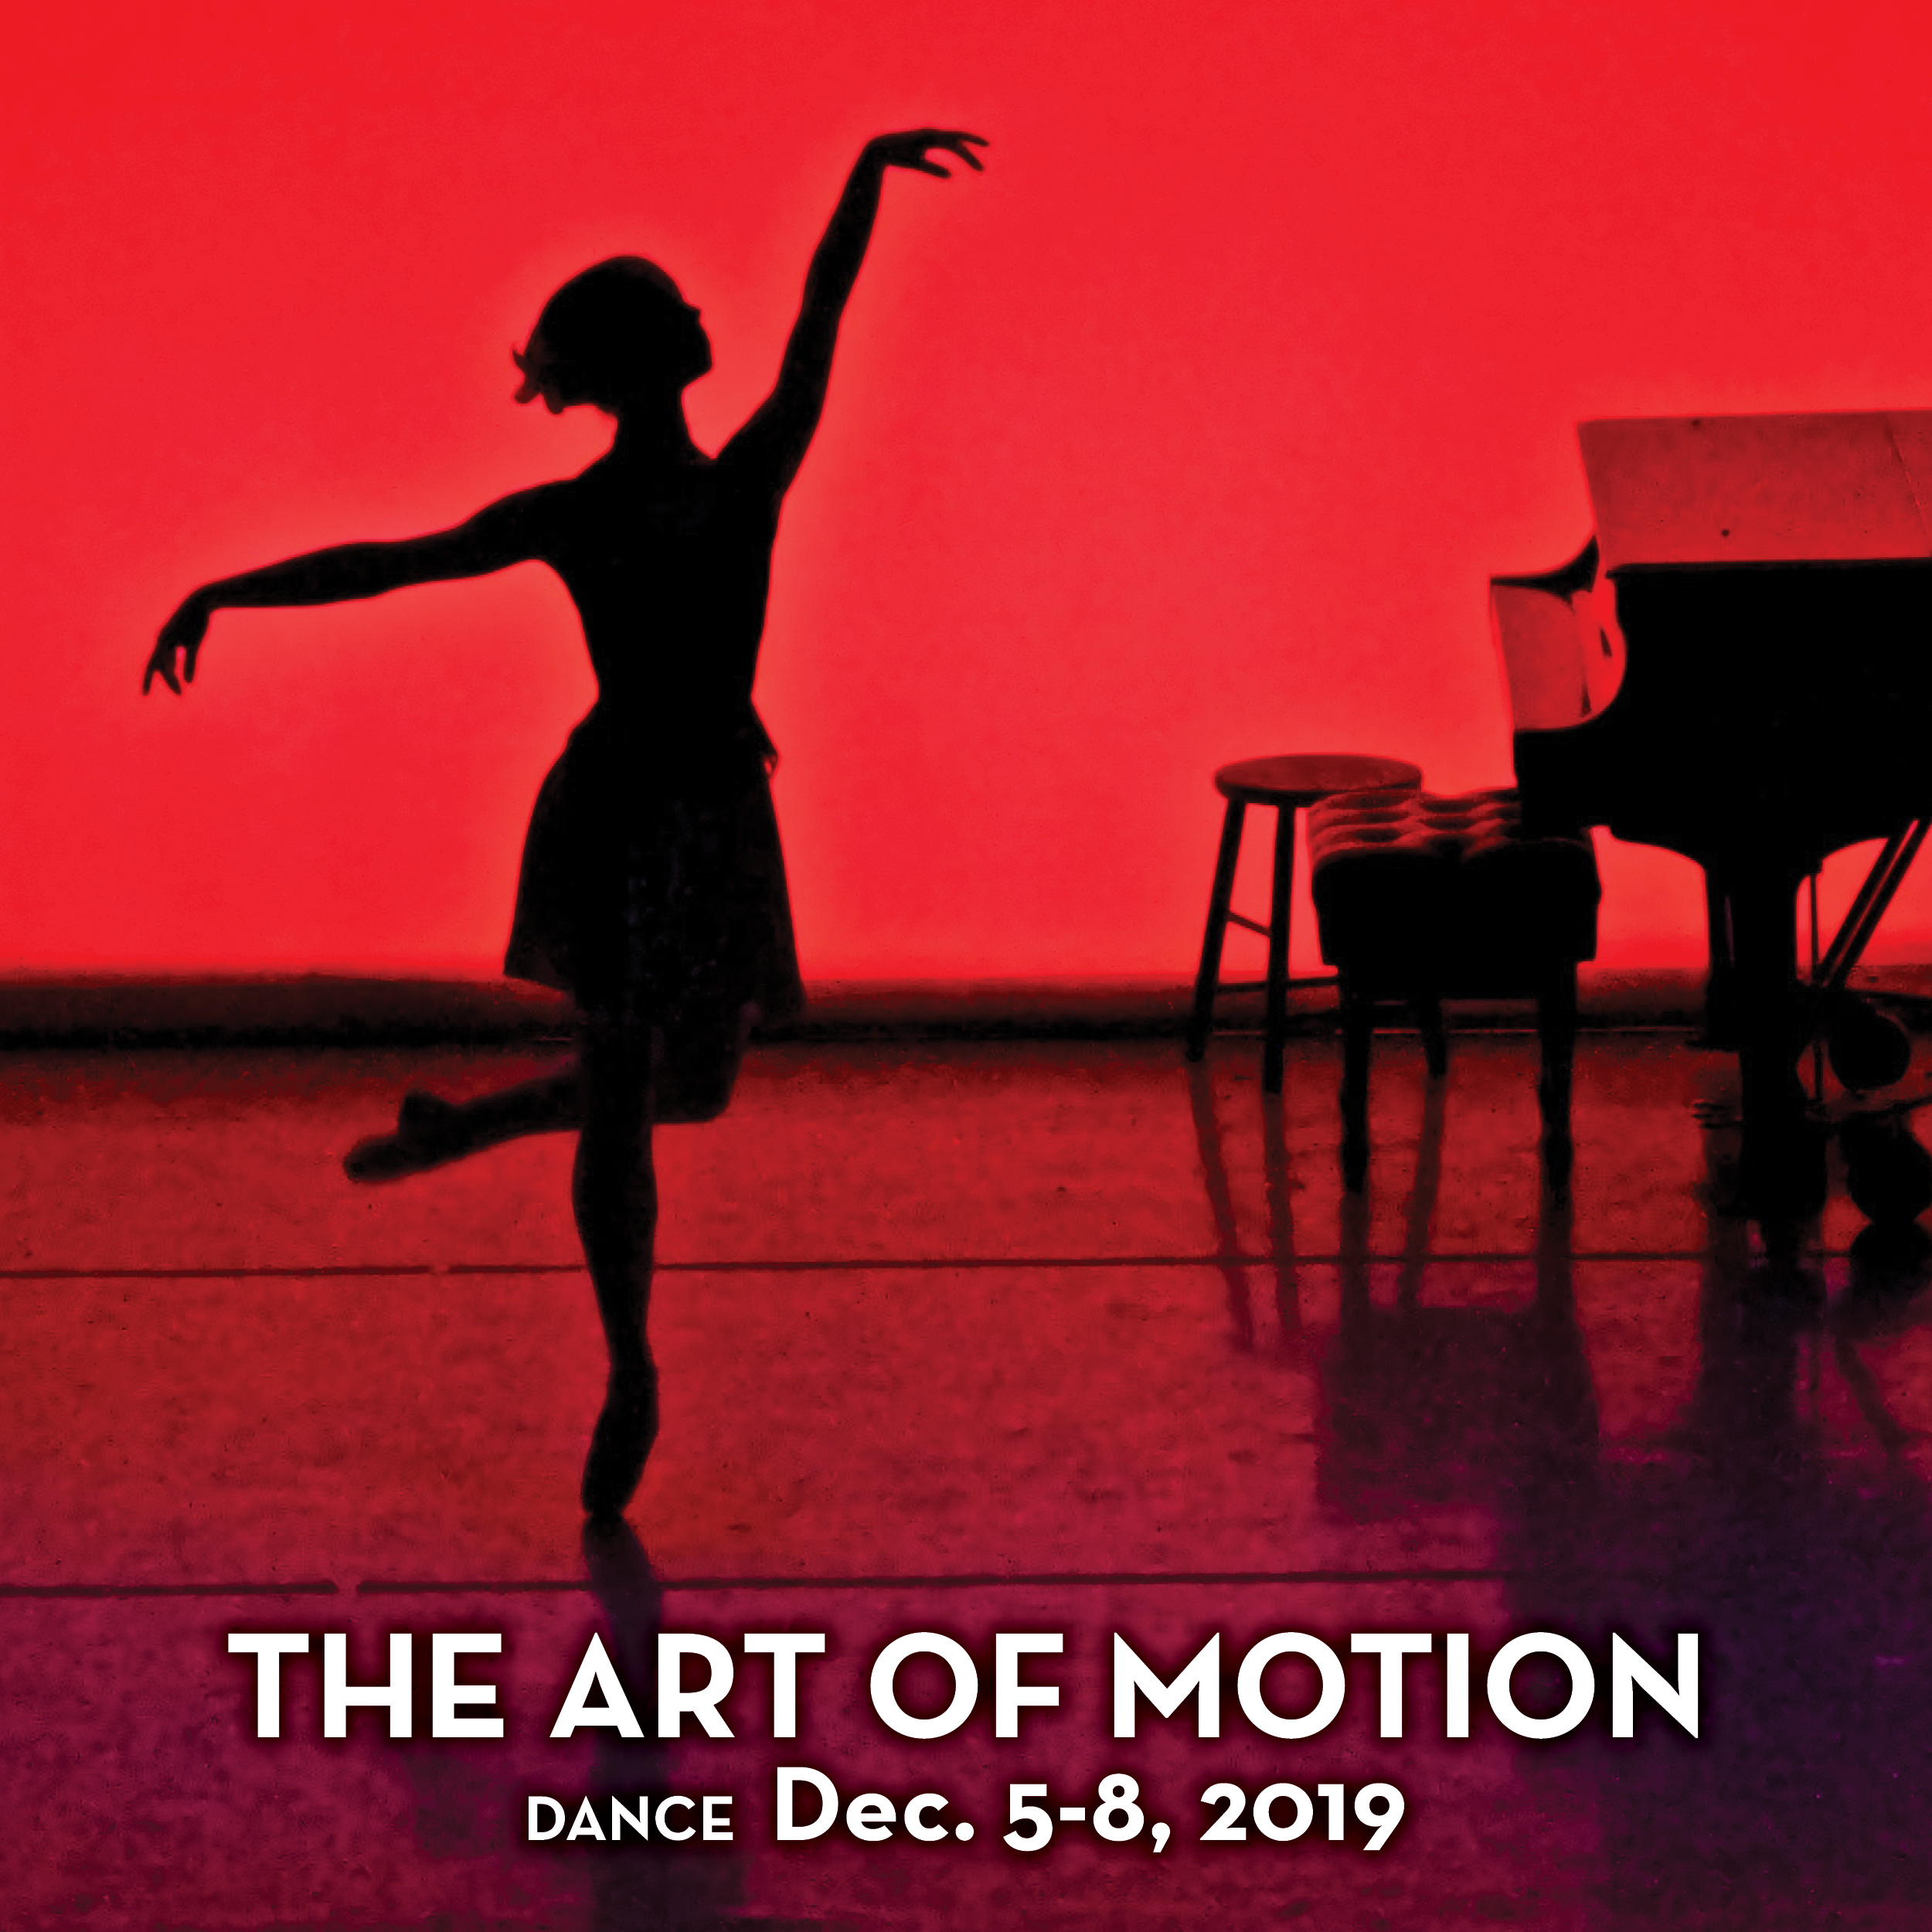 Art of Motion SQUARE WITH TITLES